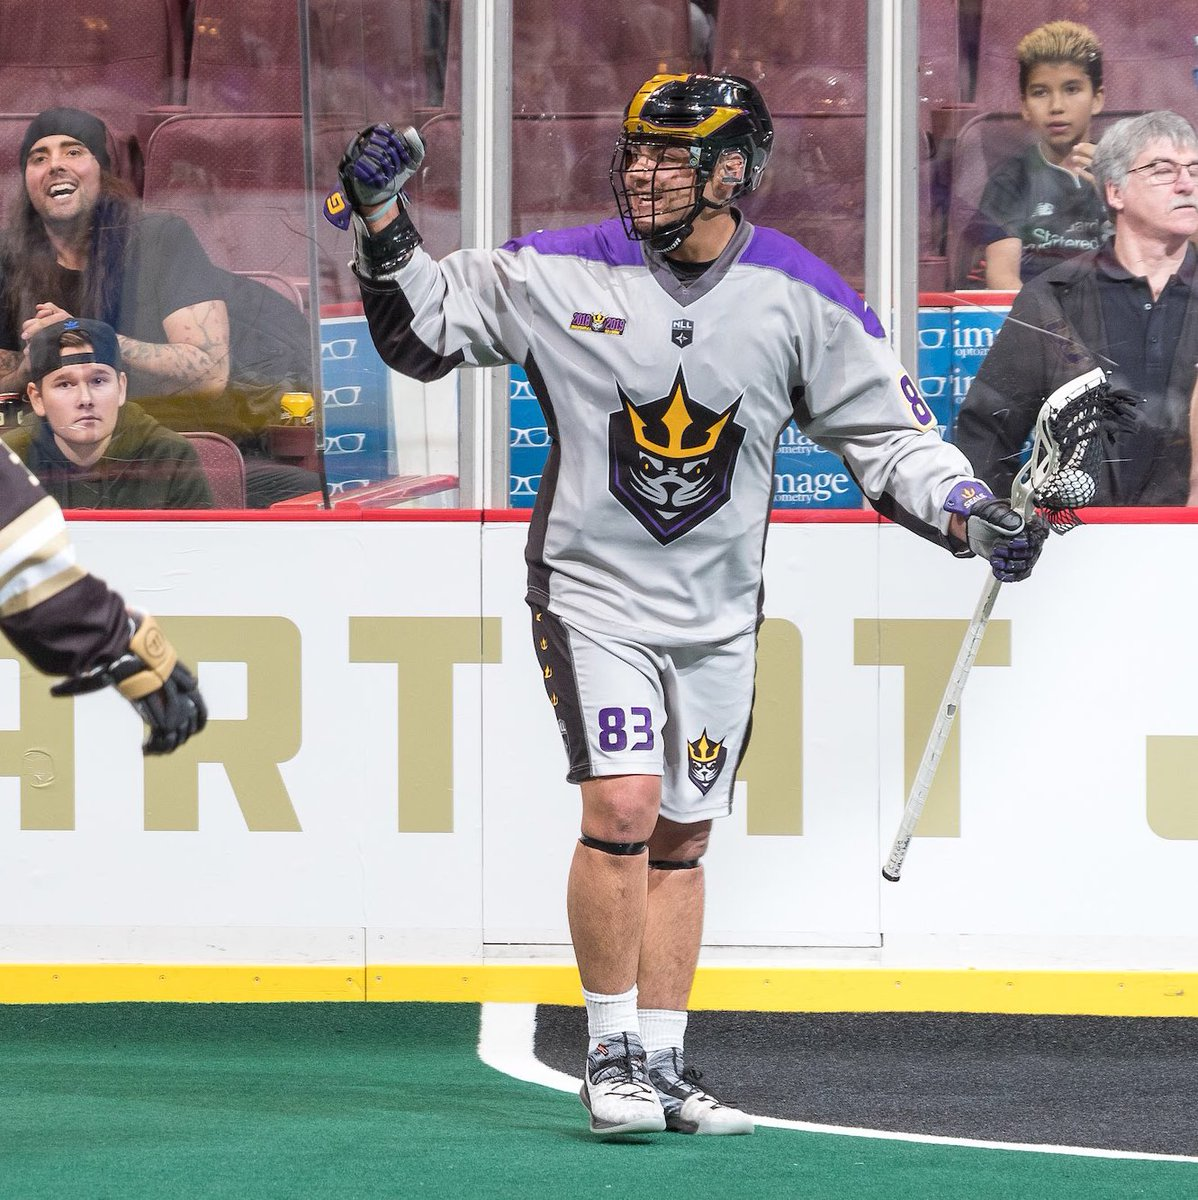 NLL ROOKIE OF THE WEEK @Top_ched83 💪